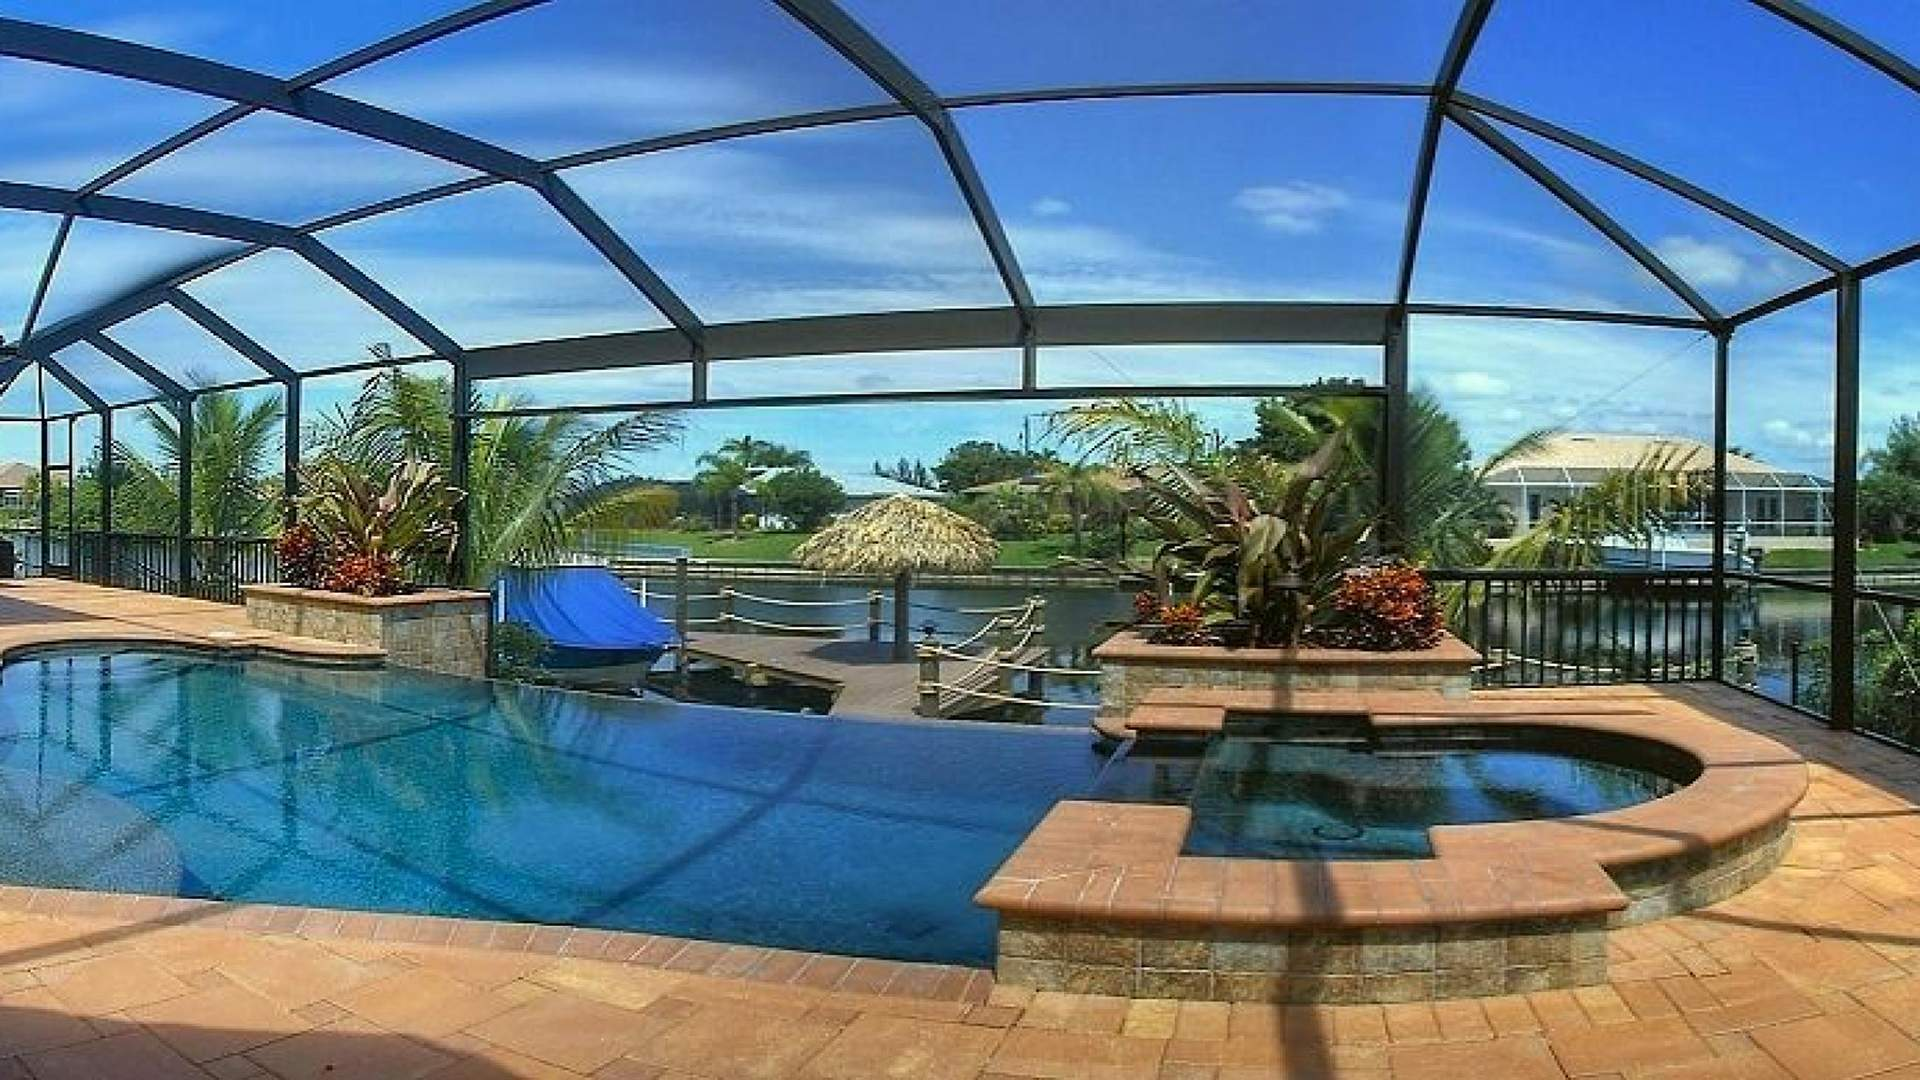 superior terrace with electric heated pool and spa and a great view over the water